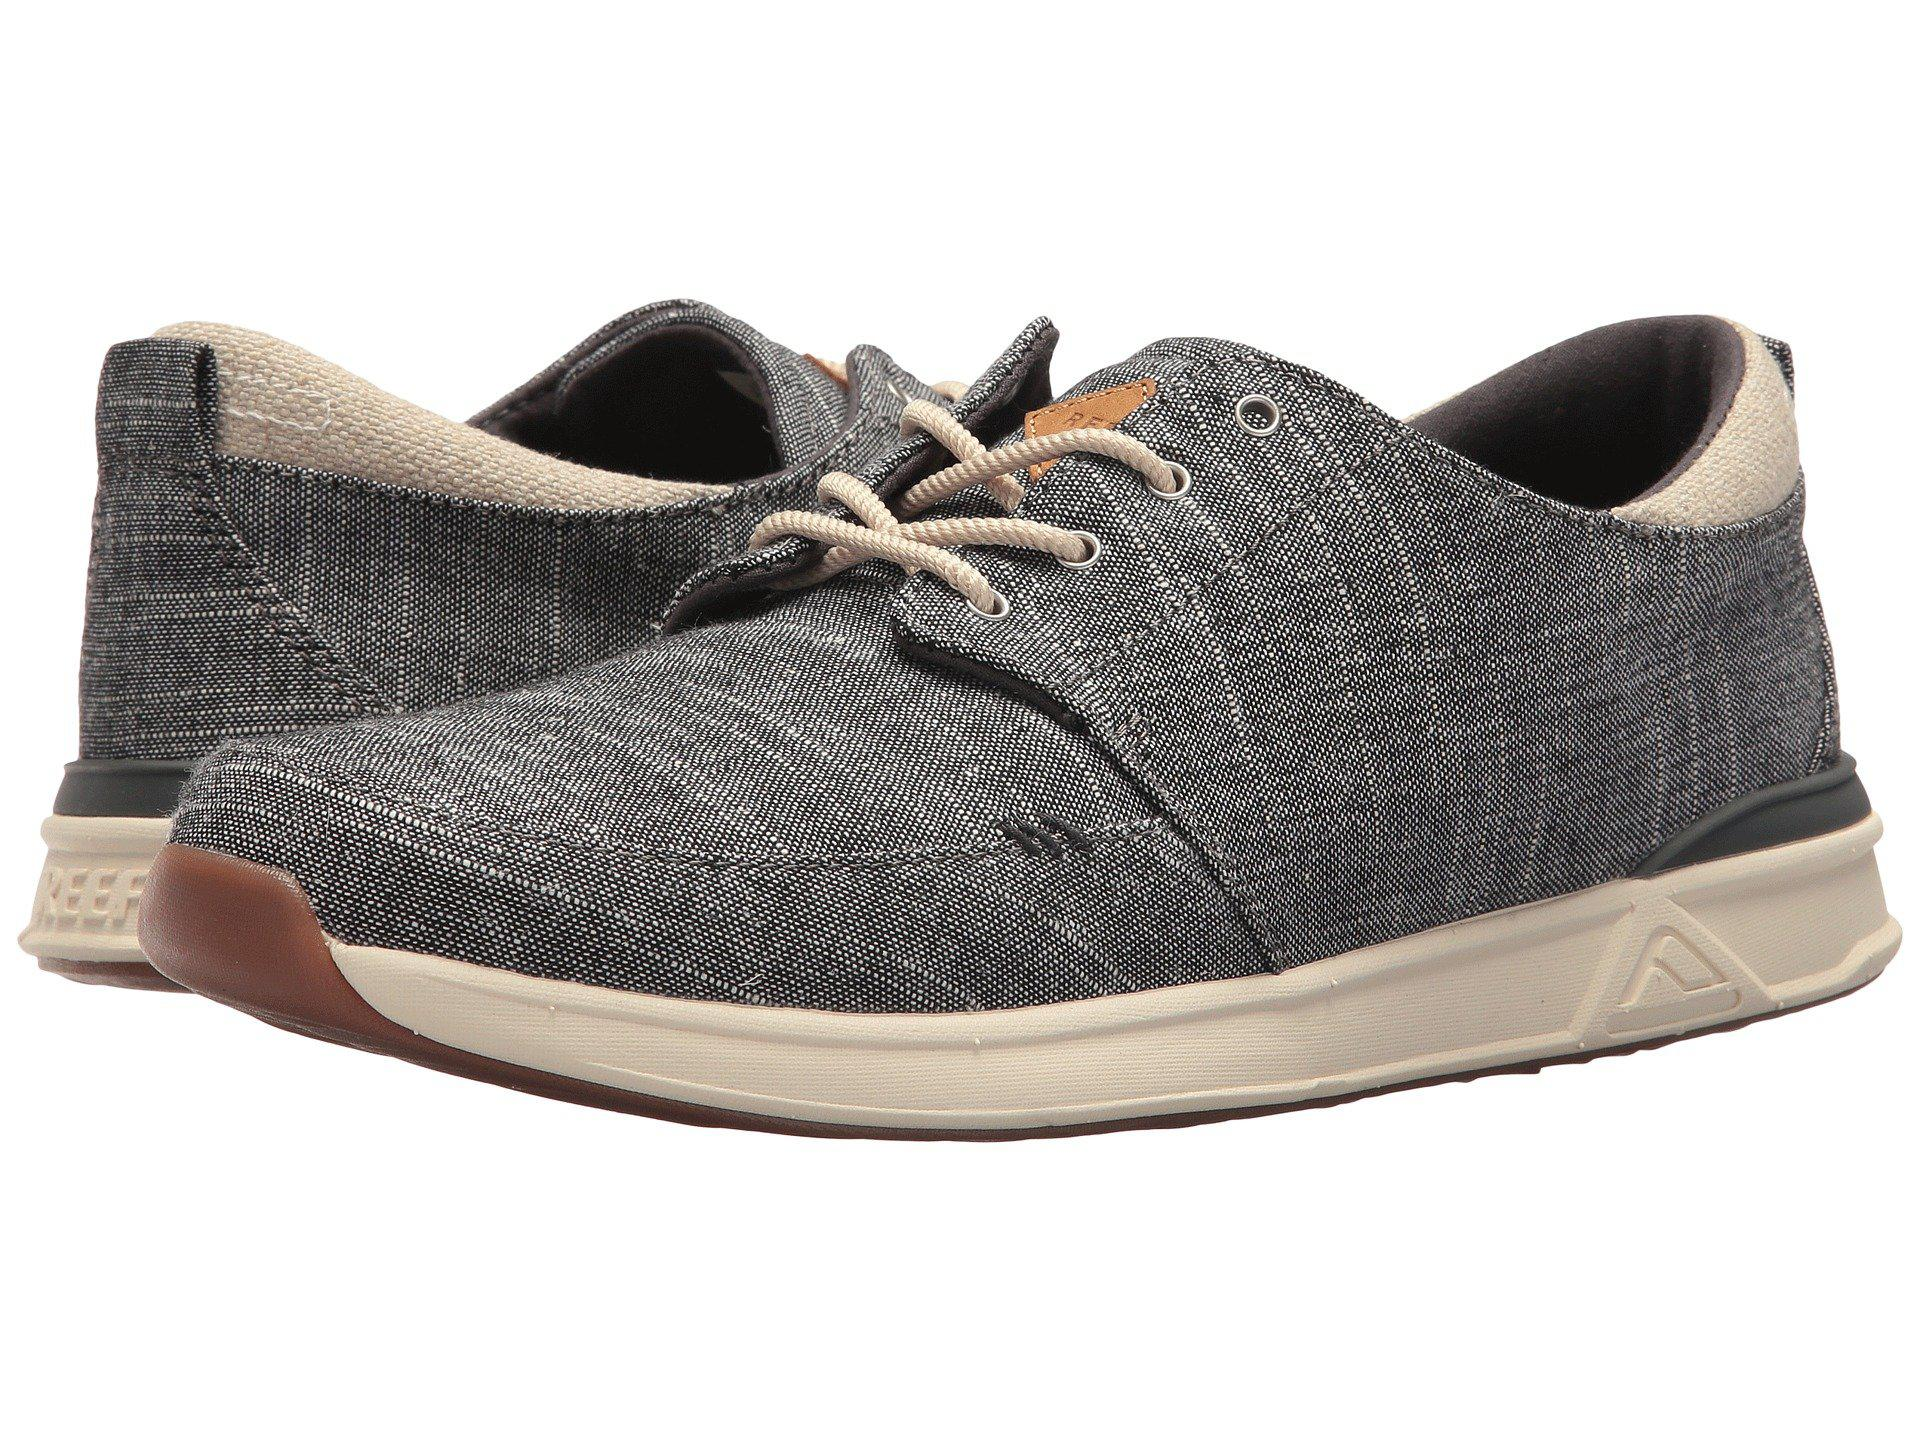 a290c1e52b05 Lyst - Reef Rover Low Tx (grey heather) Men s Shoes in Black for Men